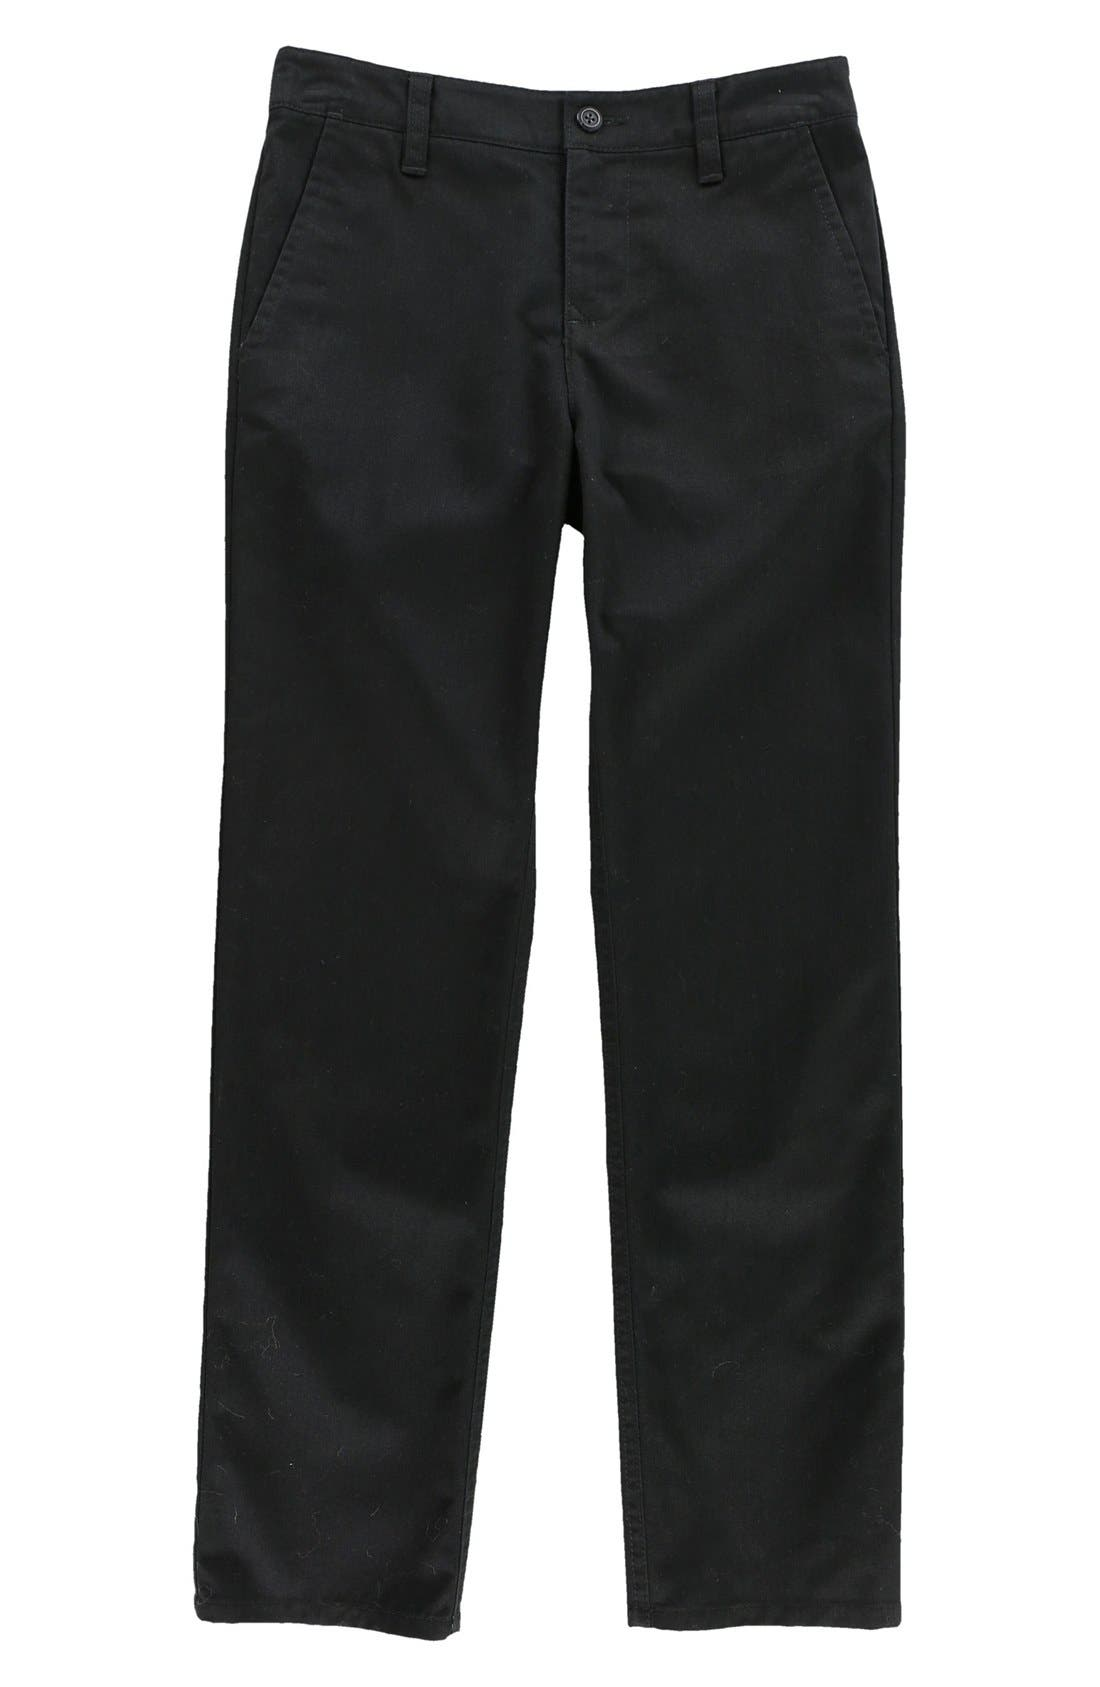 O'Neill Contact Straight Leg Twill Pants (Toddler Boys)